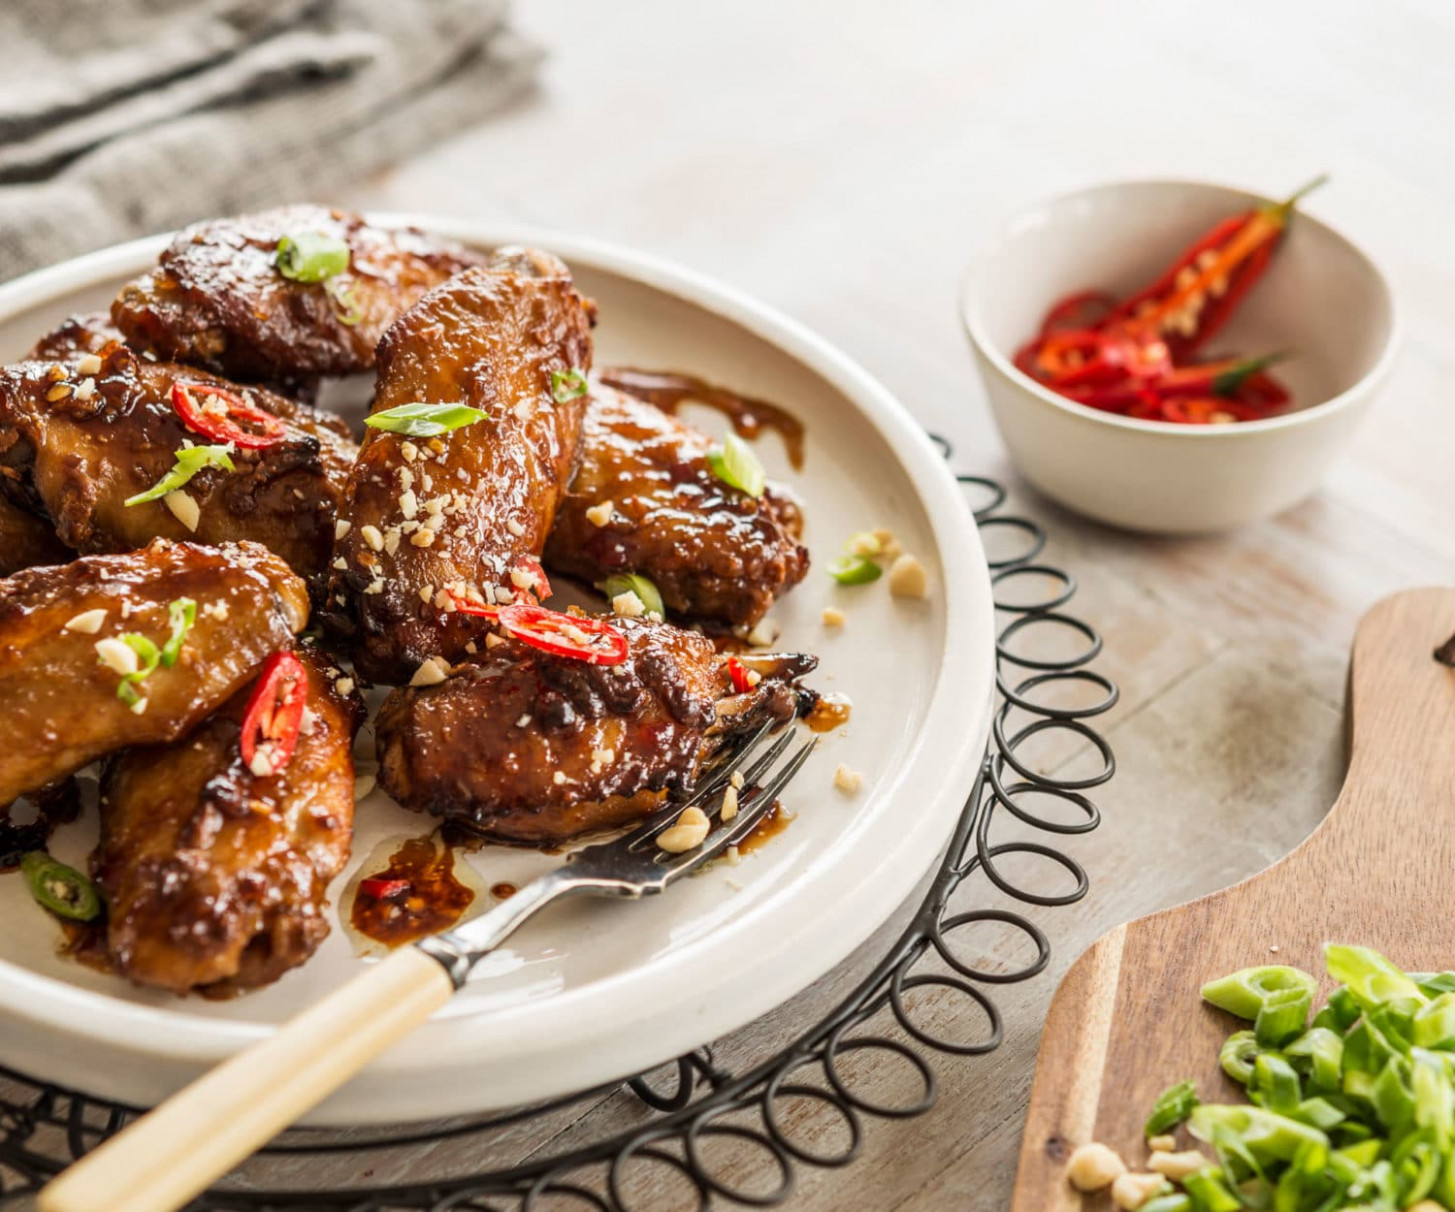 Sticky Satay Chicken Nibbles | Nadia Lim - Chicken Recipes Nadia Lim